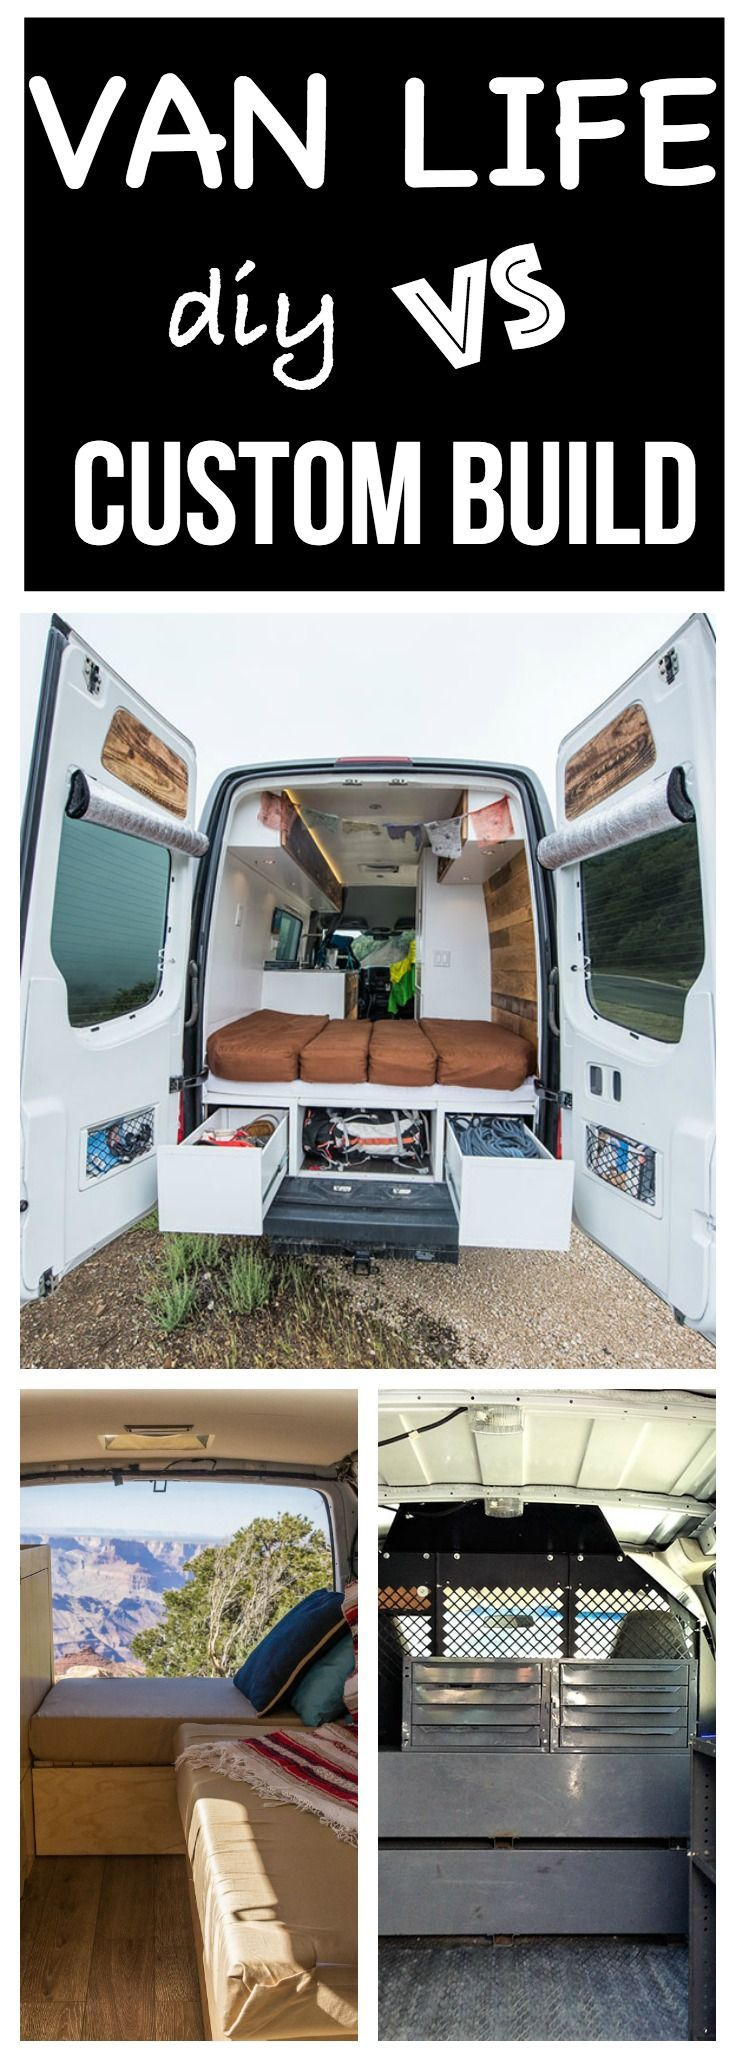 Want to get into #vanlife? Find out whether a DIY project or a custom build is best for you. #campervan #vanconversion #sprintervan #sprintercampervans #sprinter